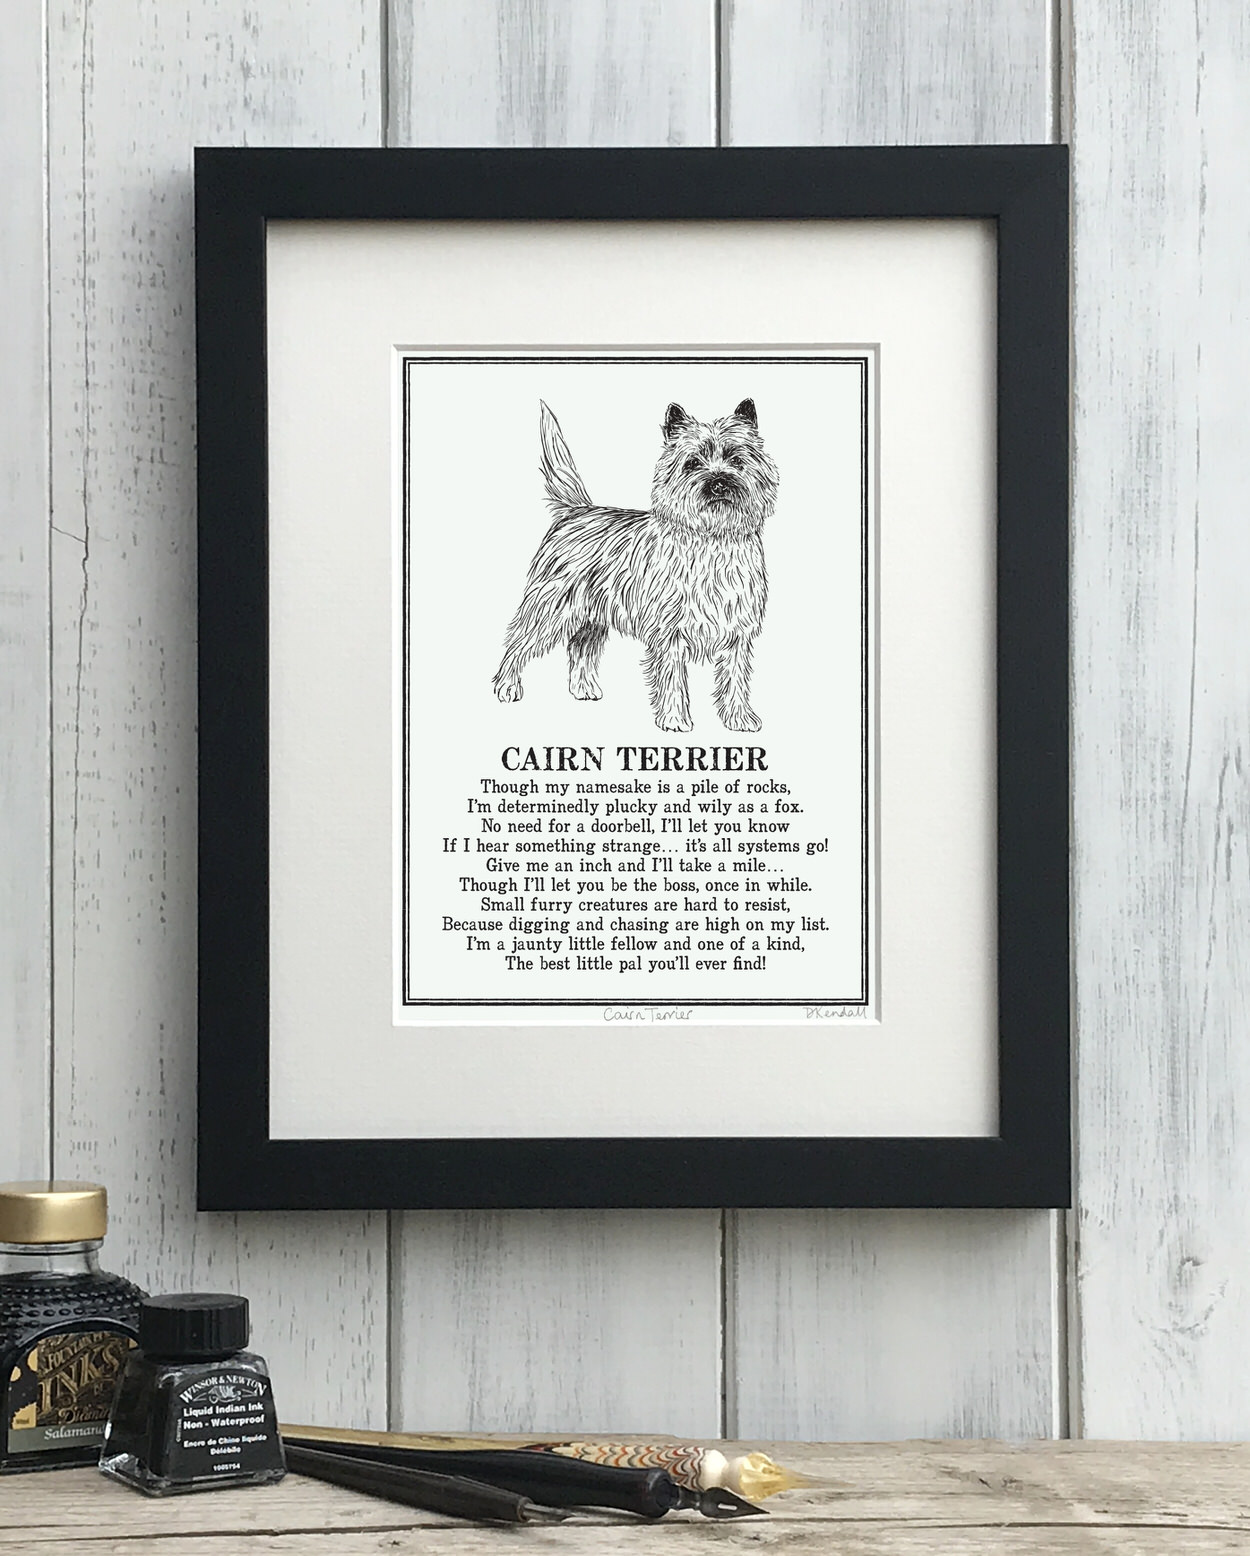 Cairn Terrier print illustrated poem by The Enlightened Hound